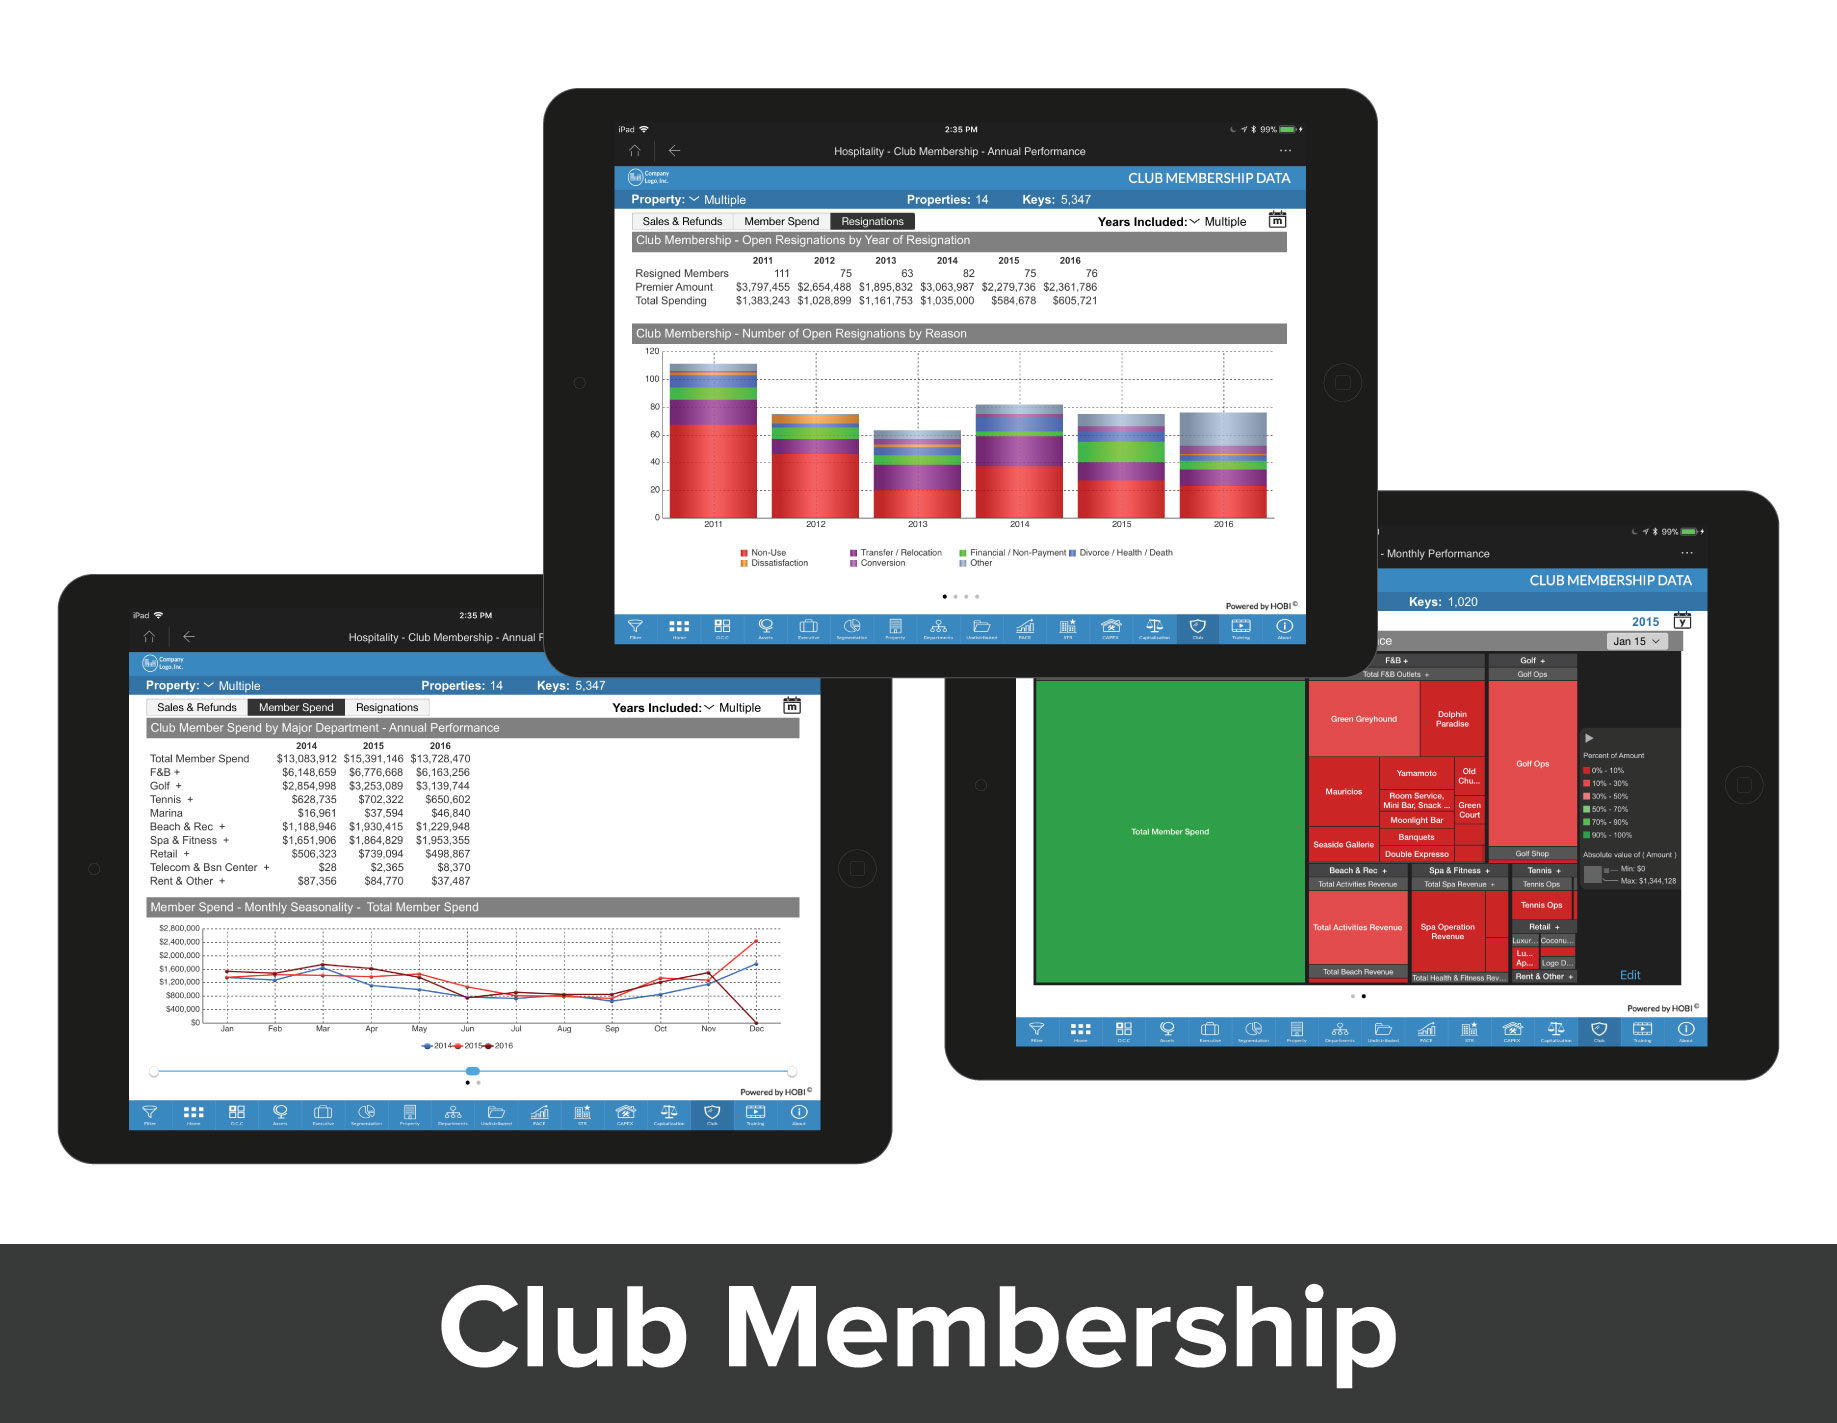 Gallery_11_Club-Membership.jpg